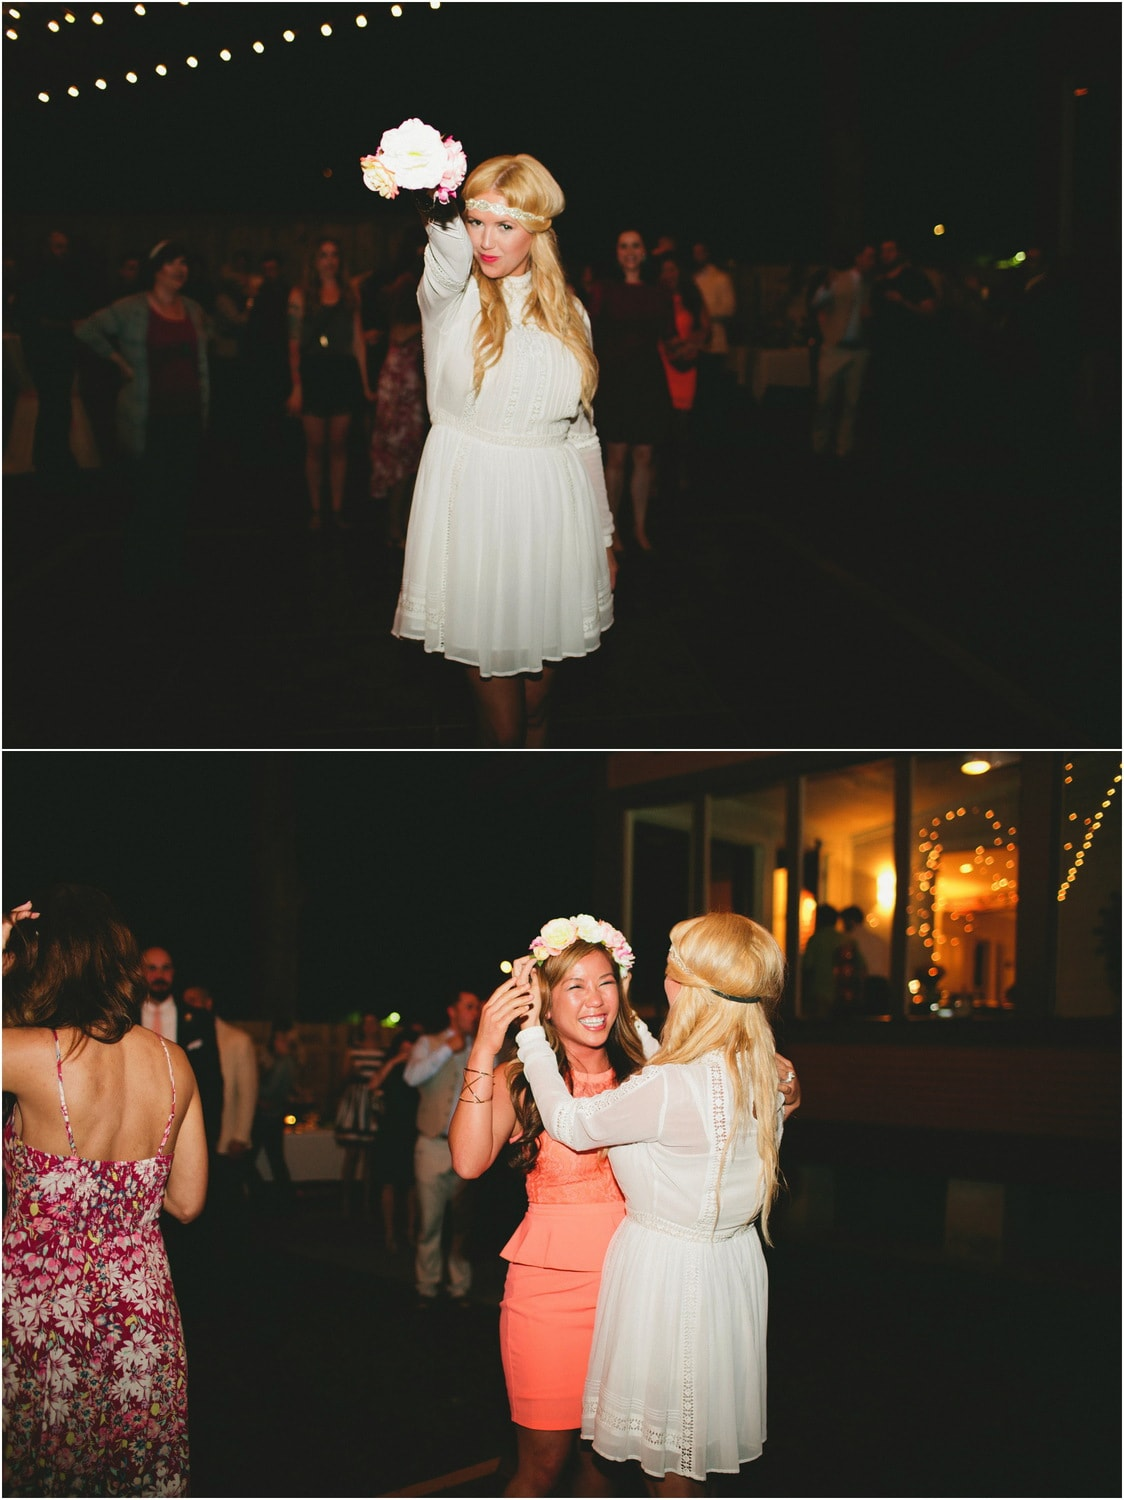 brennanlaughlin_lakecharles_wedding_664_blogstomped